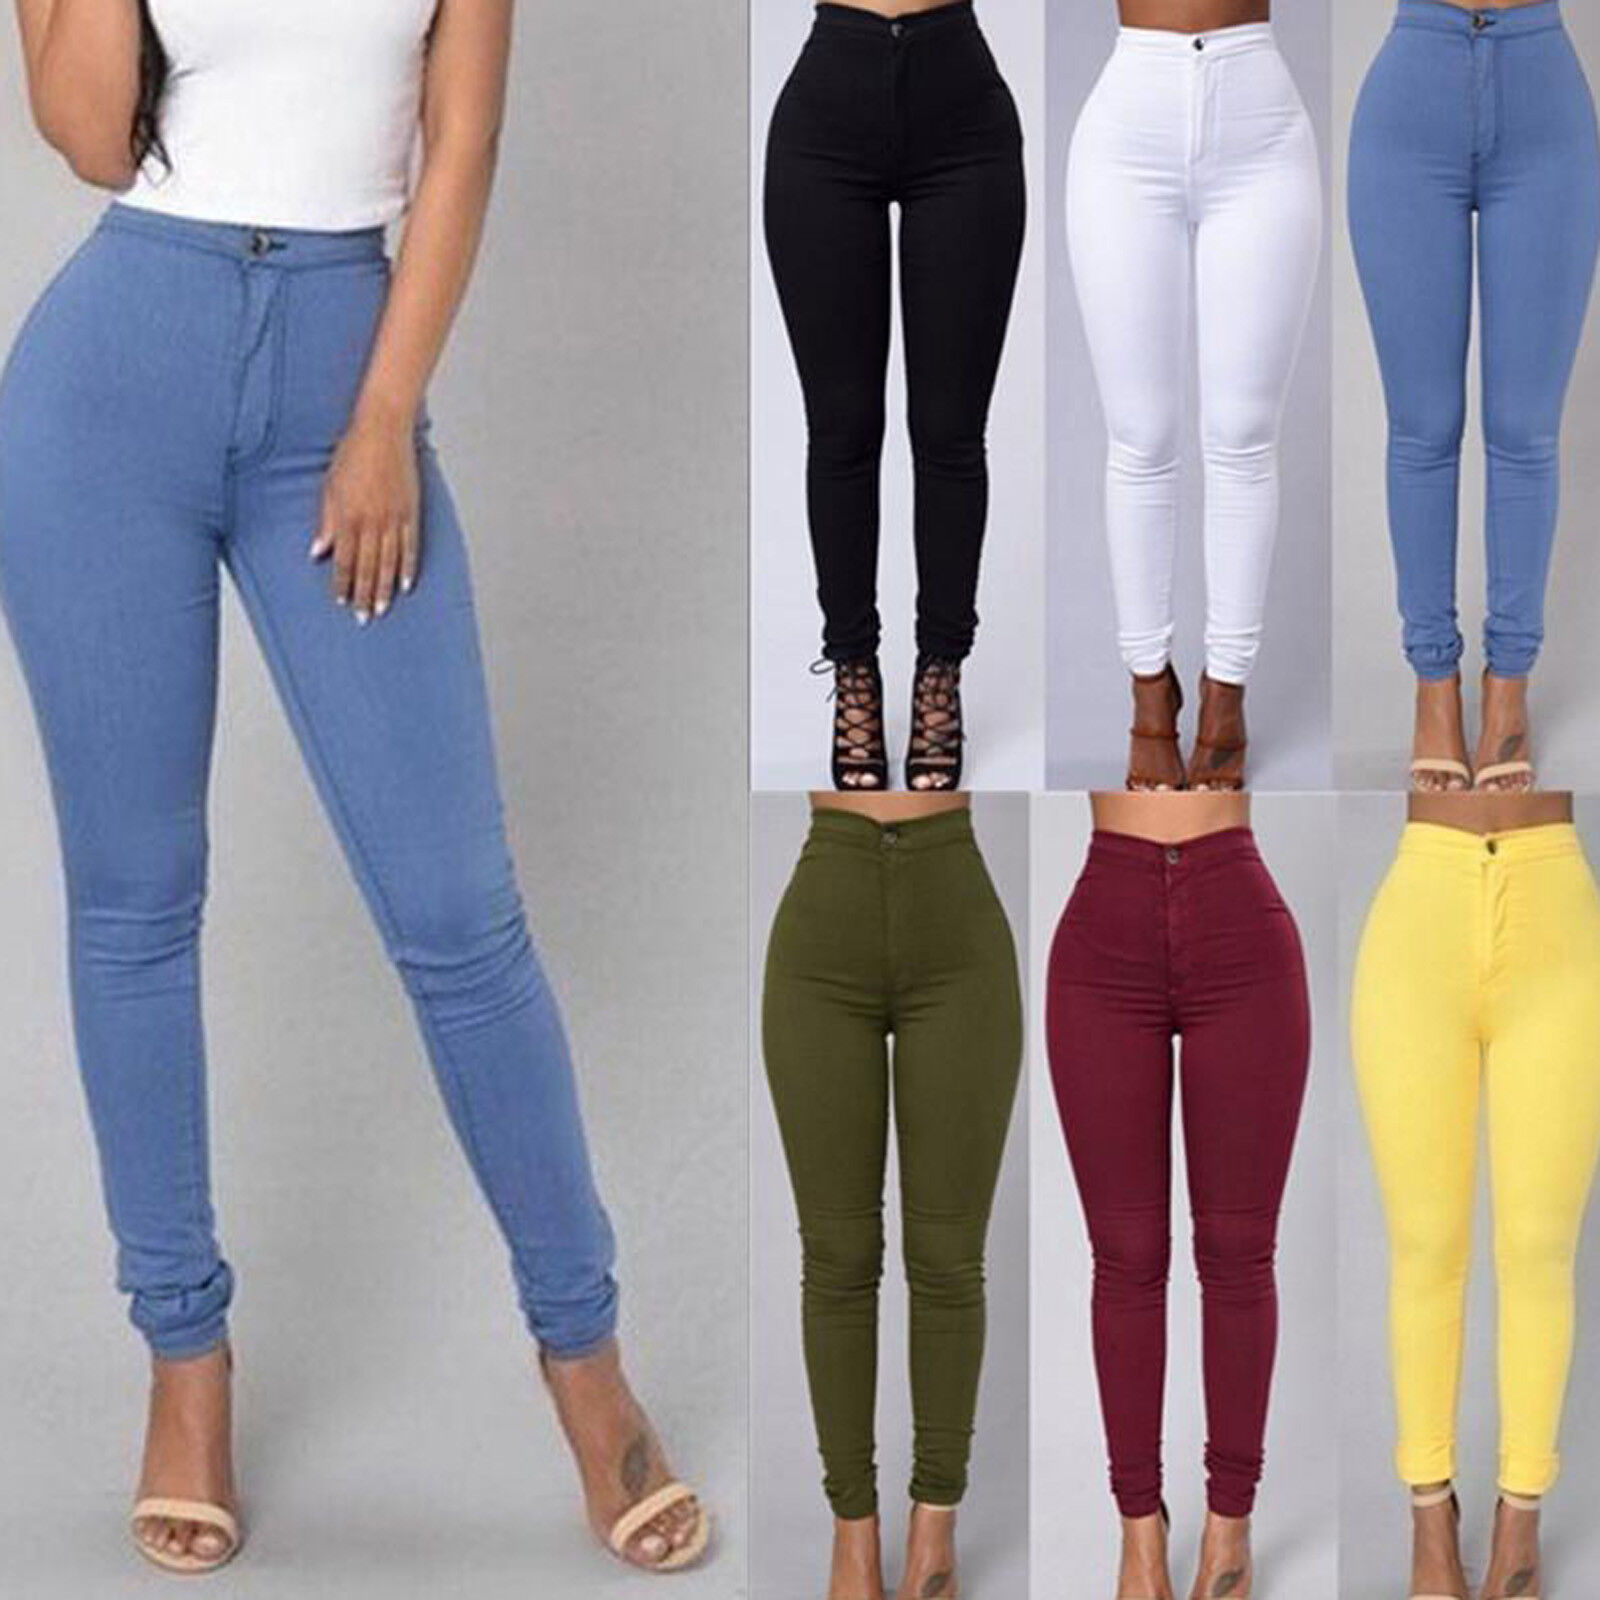 Sexy Women Fashion High Waisted Soft Skinny Stretchy Pants S